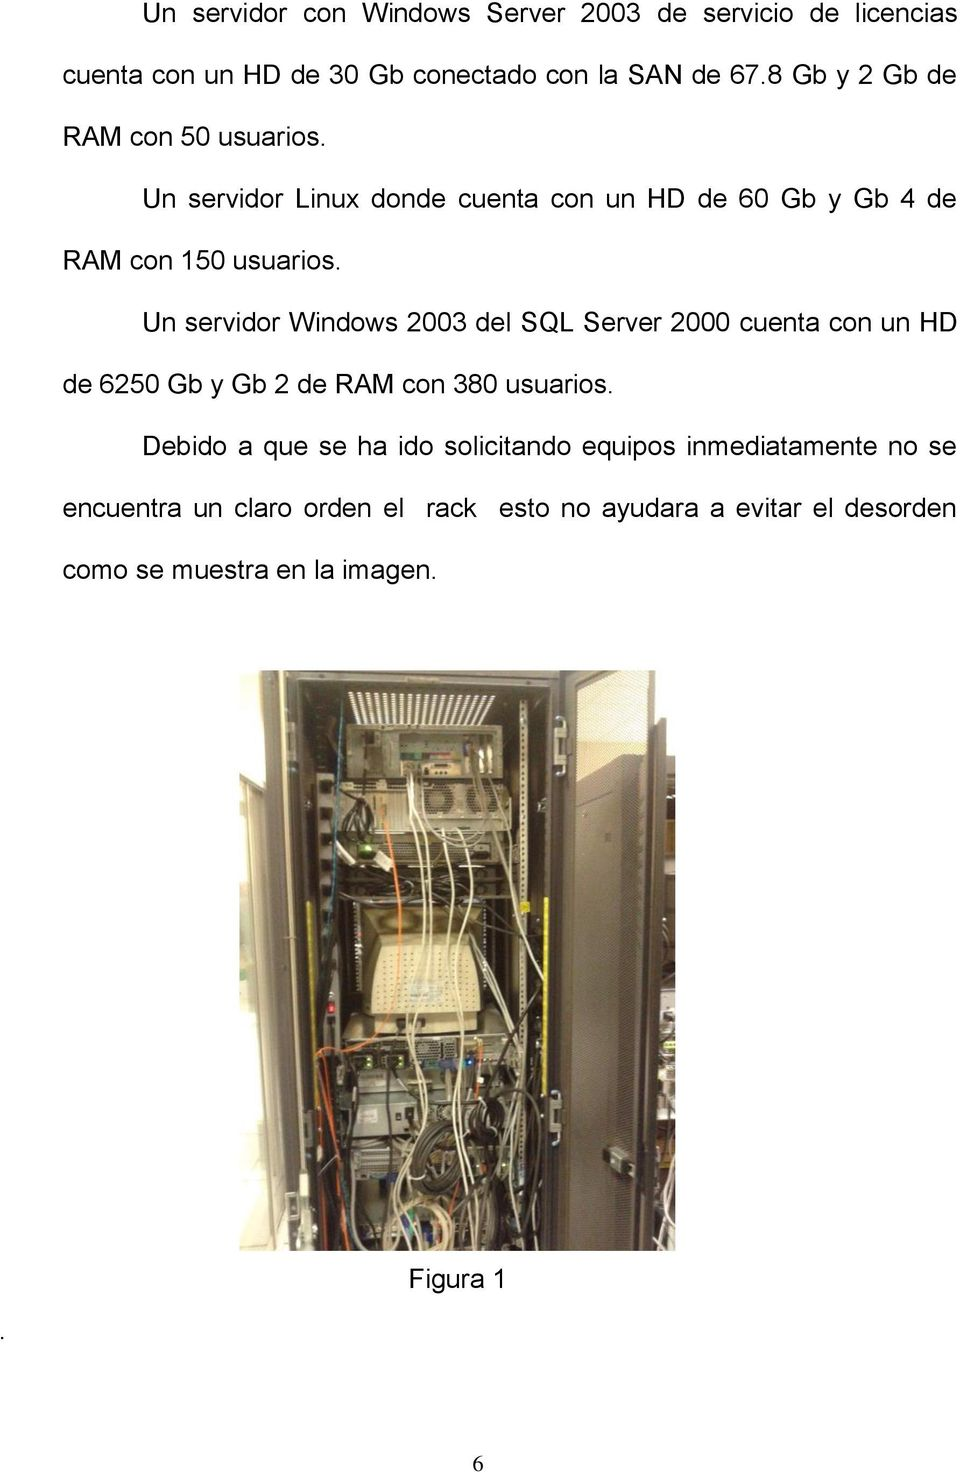 Un servidor Windows 2003 del SQL Server 2000 cuenta con un HD de 6250 Gb y Gb 2 de RAM con 380 usuarios.